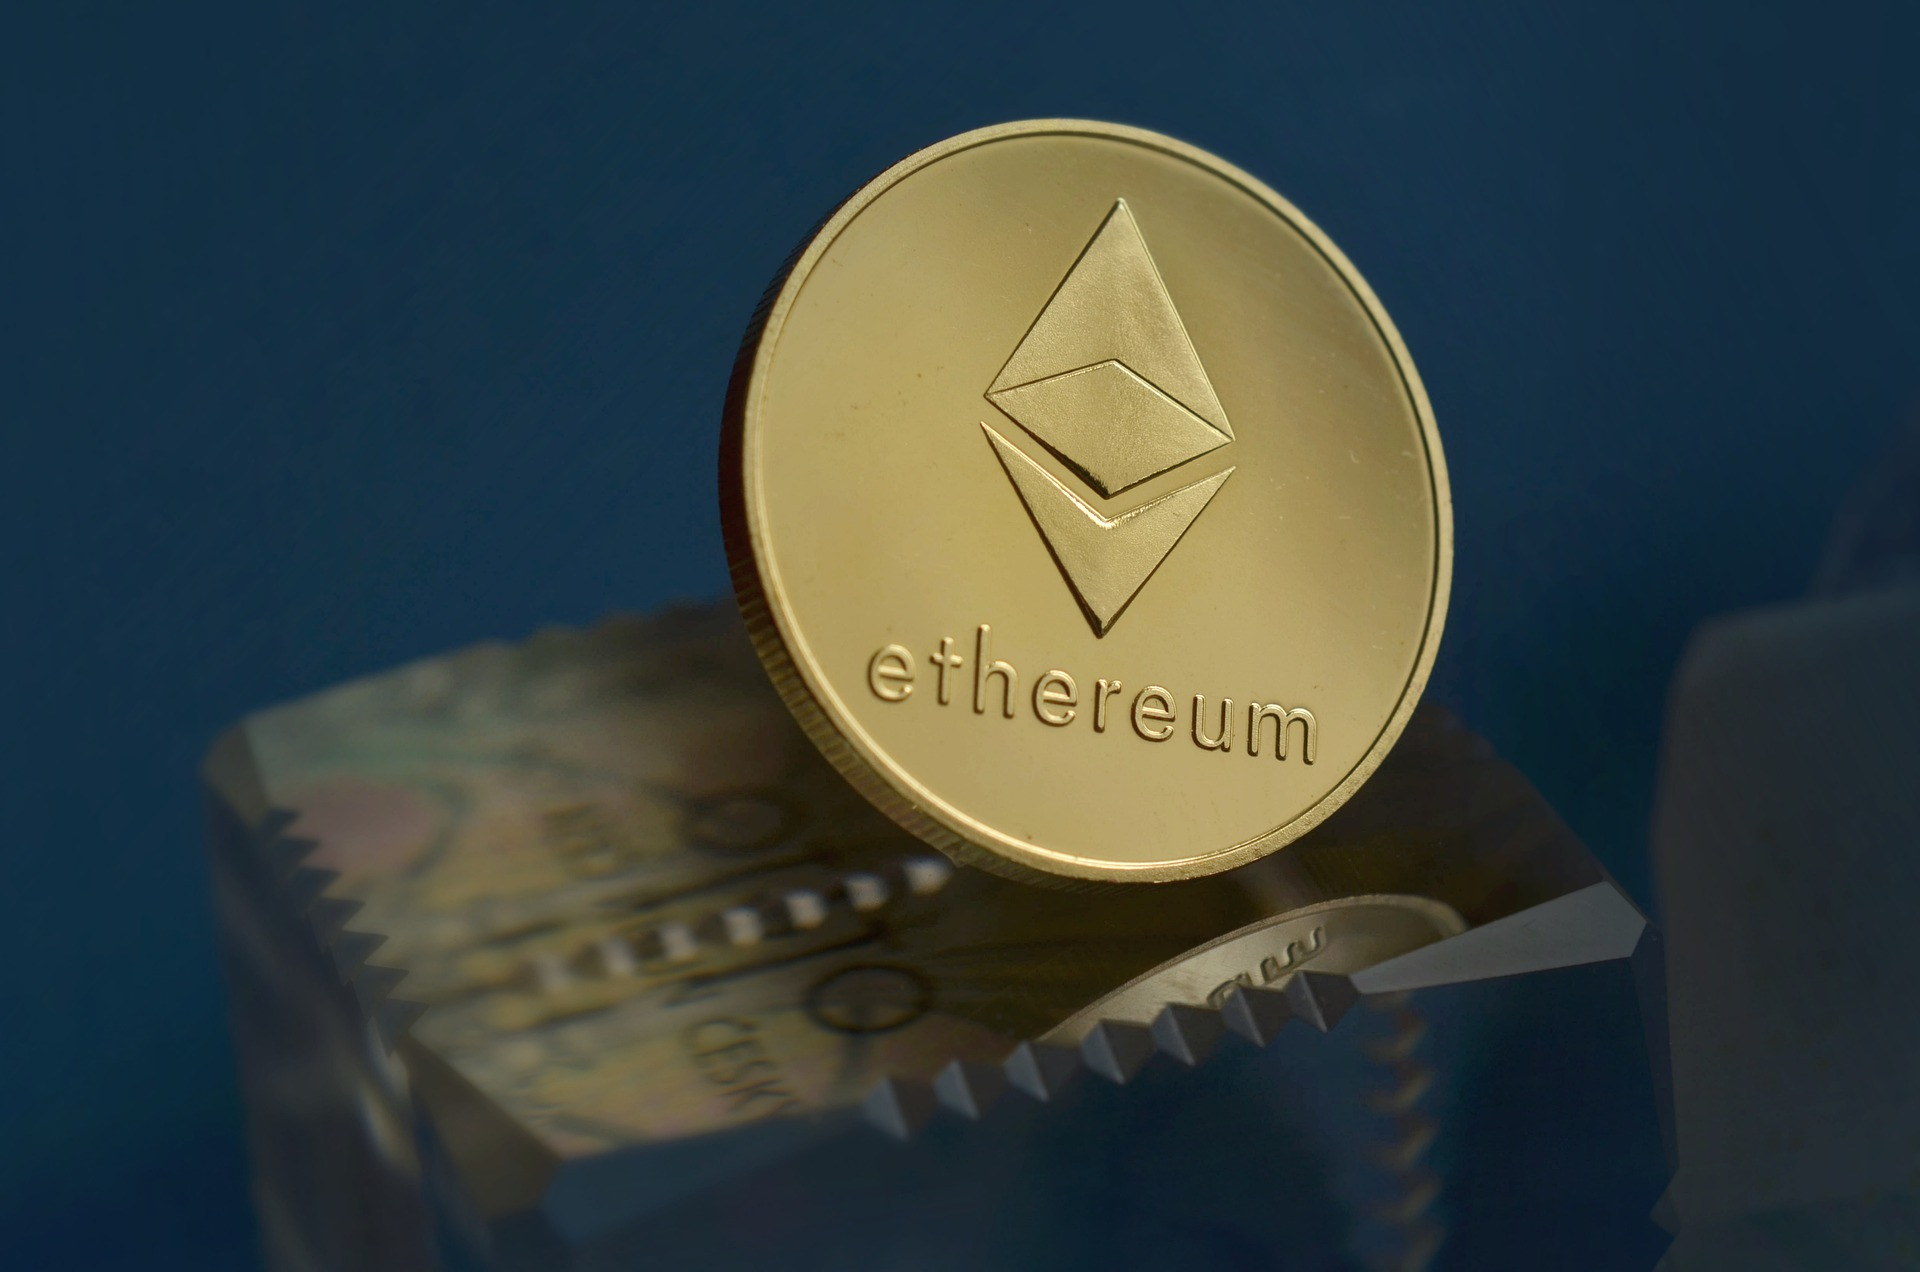 38,178 ETH Lost by Israel-Based Cryptocurrency Firm